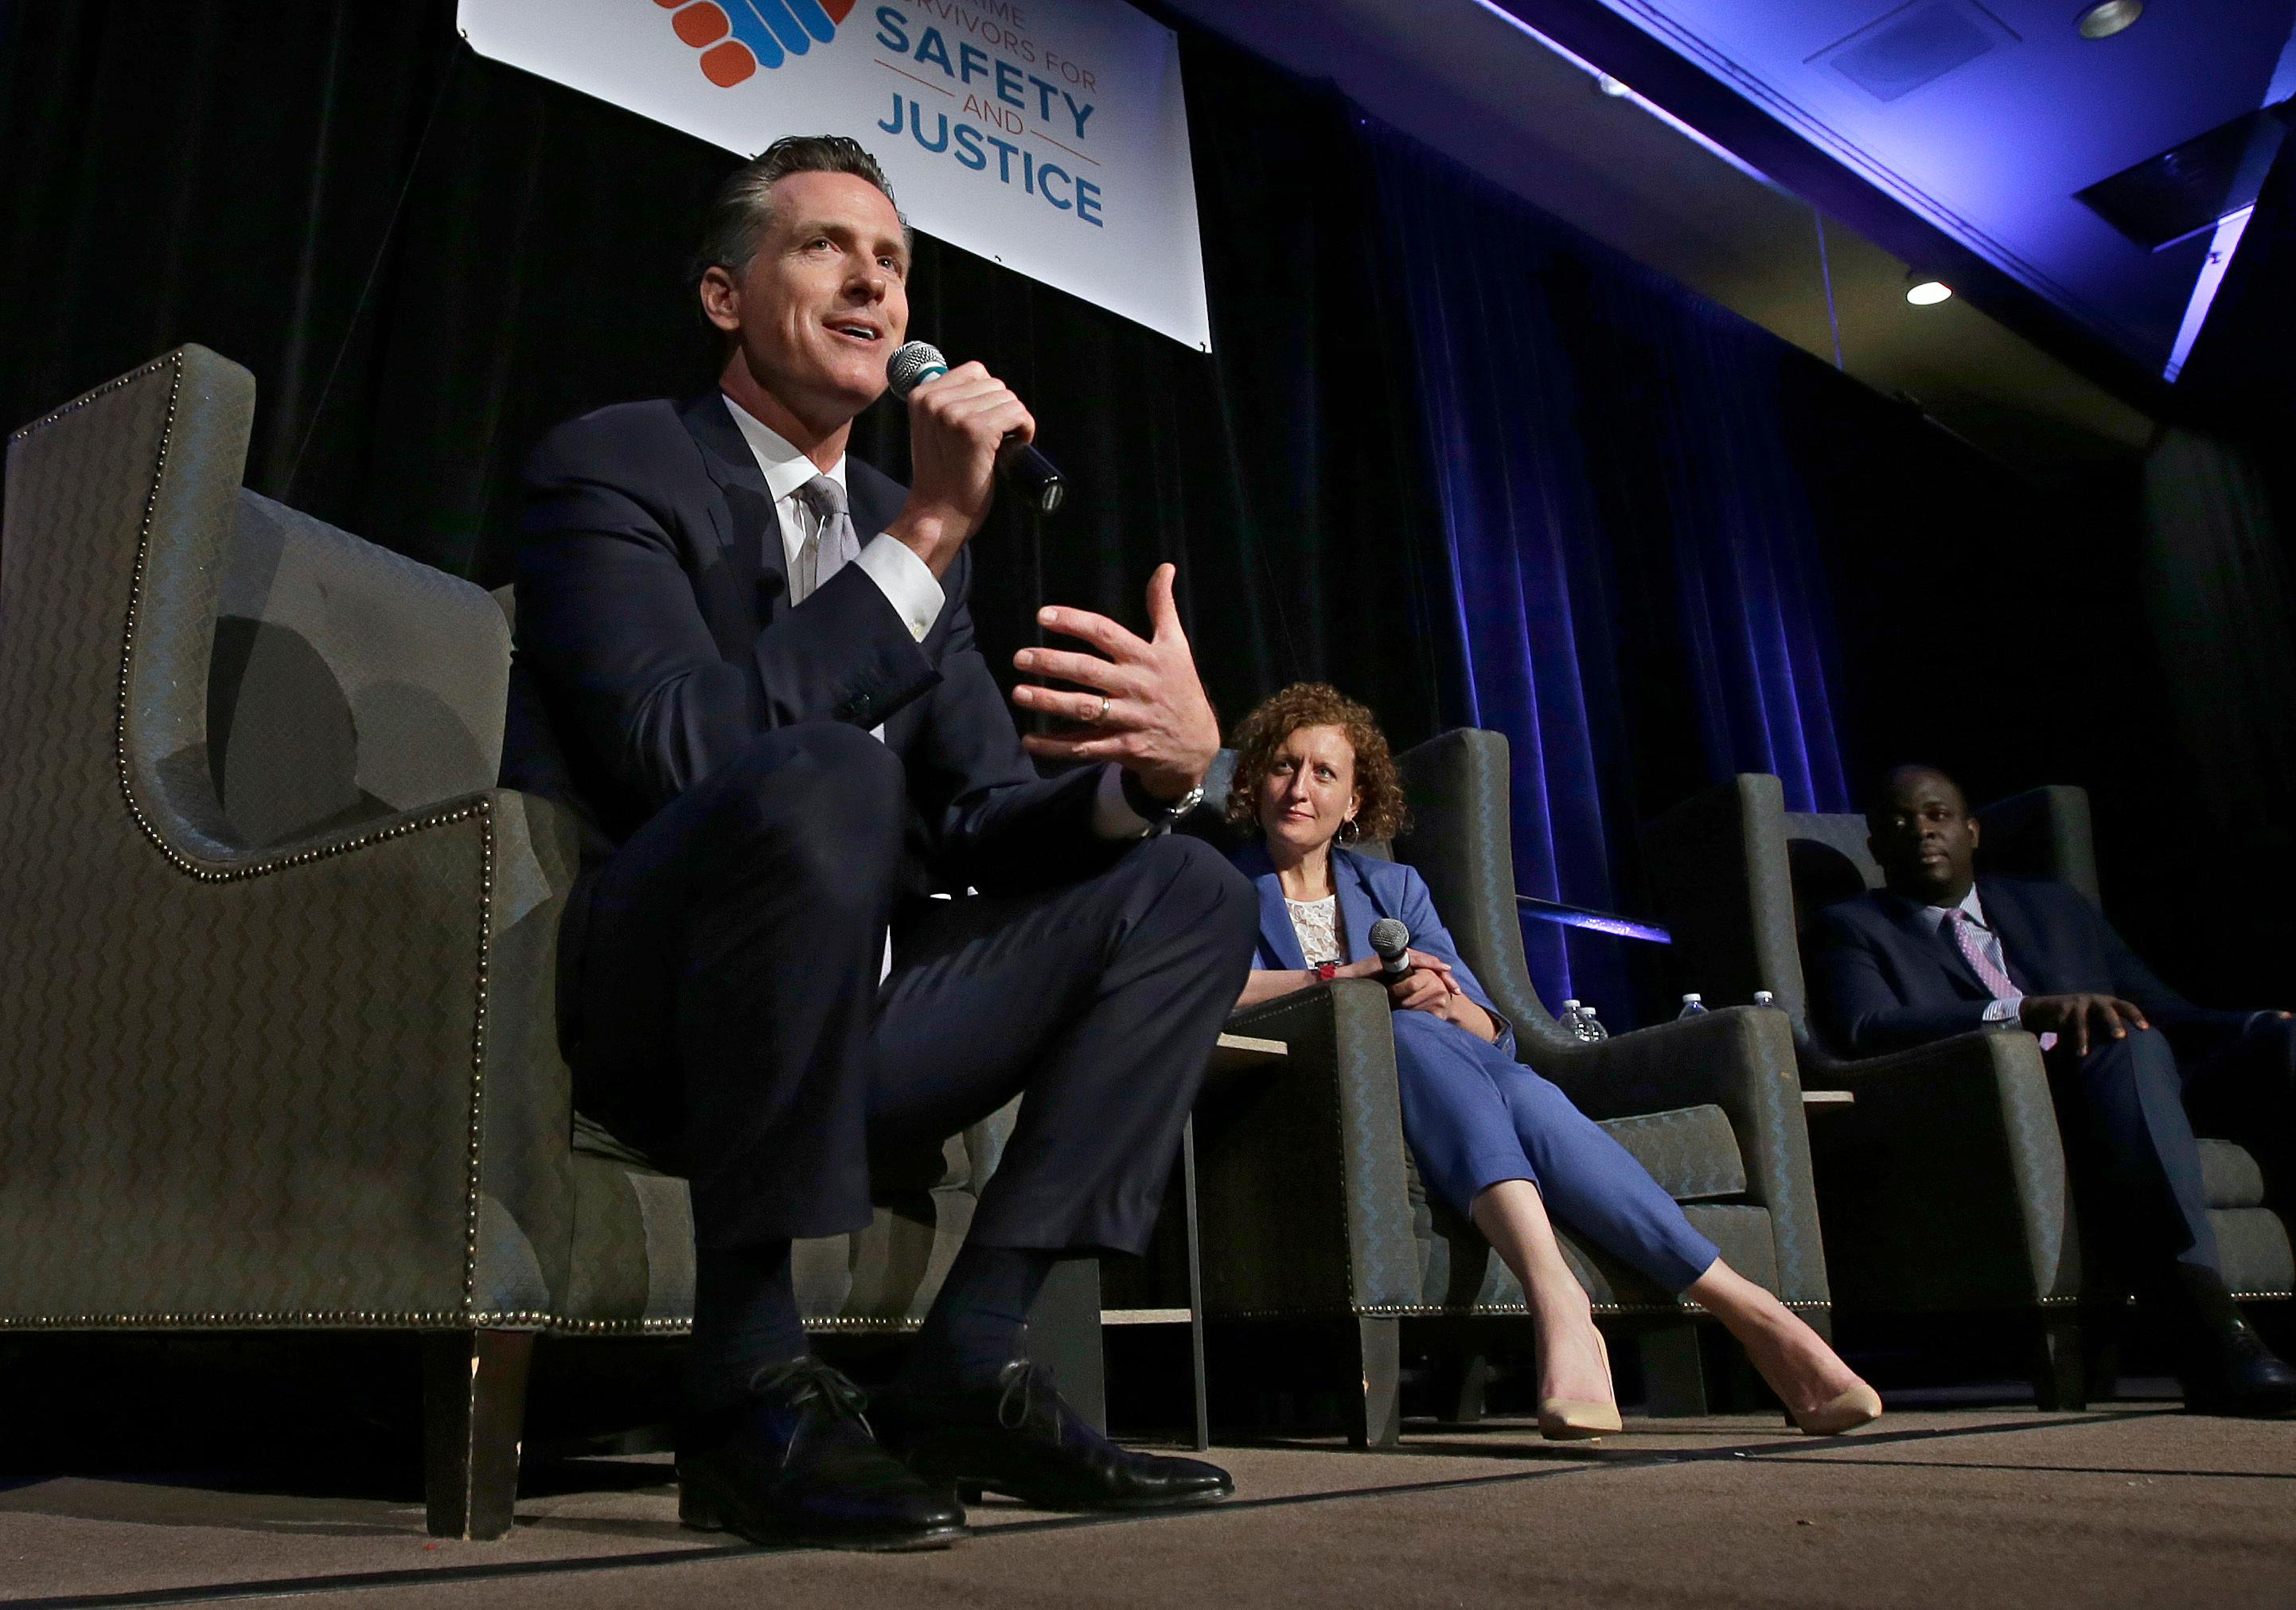 Lt. Gov. Gavin Newsom, a candidate for California governor, speaks at a gubernatorial candidates forum, Tuesday, April 4, 2017, in Sacramento, Calif. Newsom along with fellow Democratic gubernatorial candidates, state Treasurer John Chiang and former Los Angeles Mayor Antonio Villaraigosa addressed attendees at a conference held by Crime Survivors For Safety and Justice. In the center is Lenore Anderson, founder and executive director of Crime Survivors For Safety and Justice and at right is Alex Johnson, the managing director.  (AP Photo/Rich Pedroncelli)